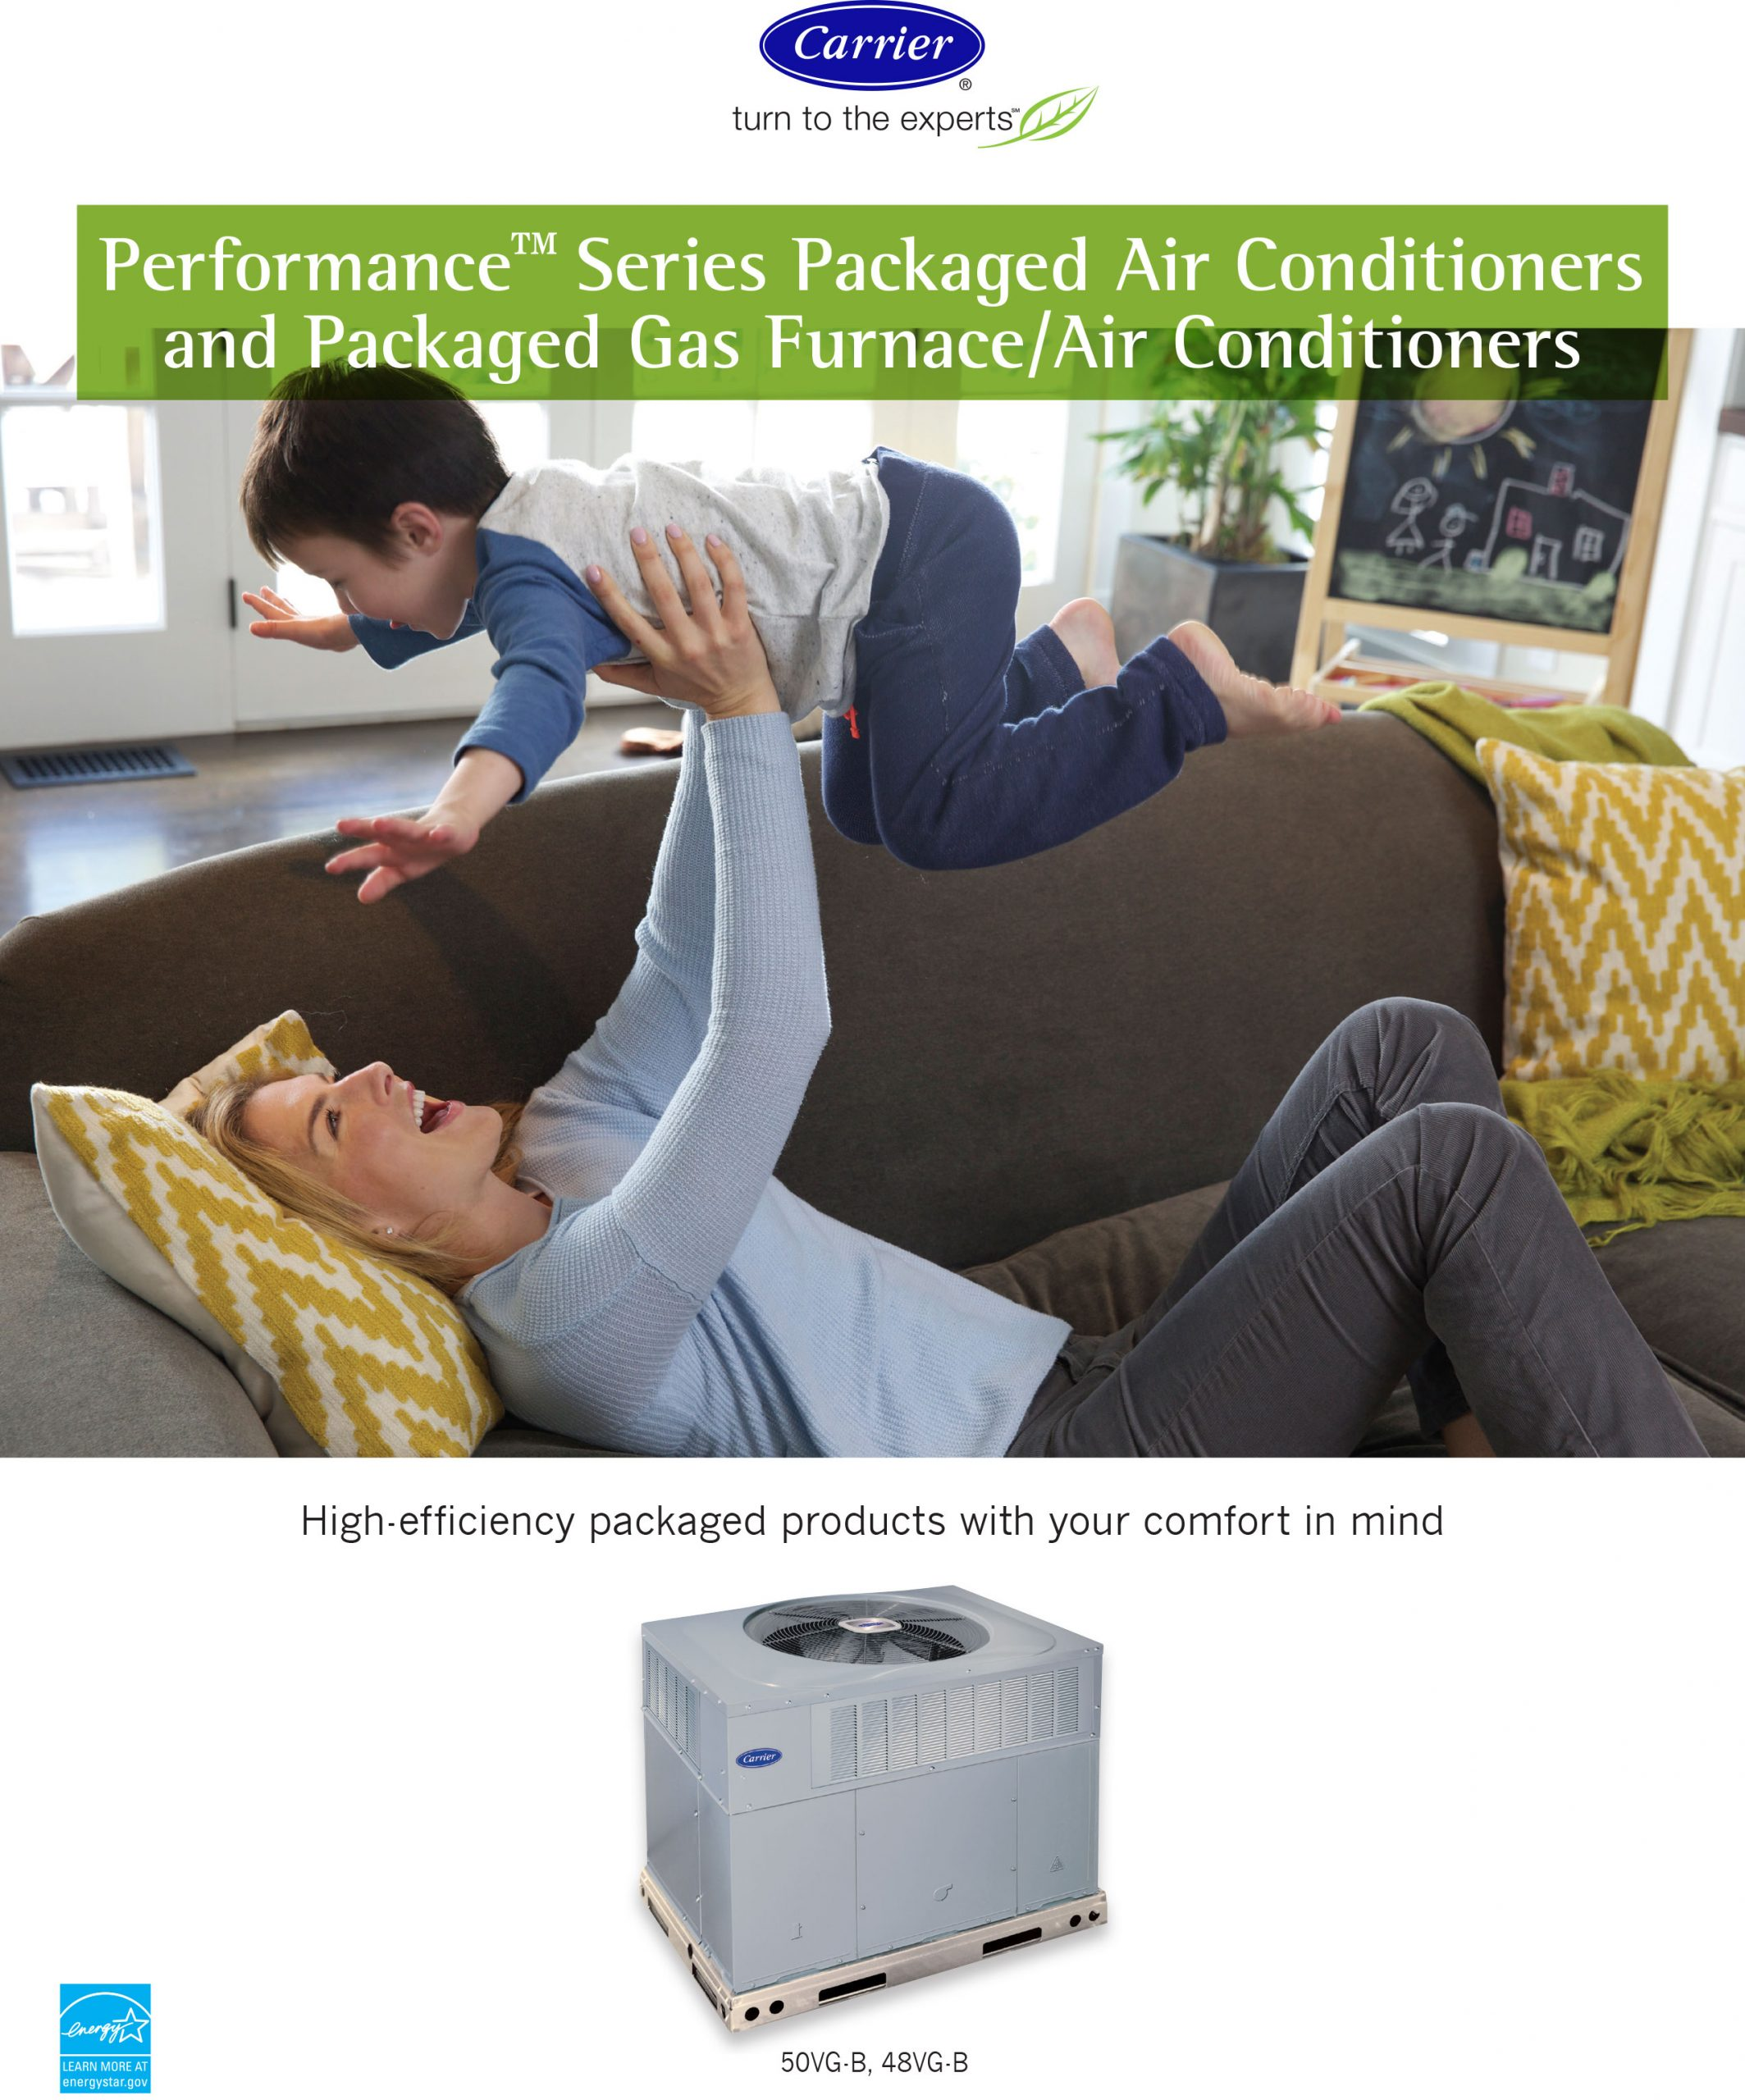 Performance Series Packaged Units